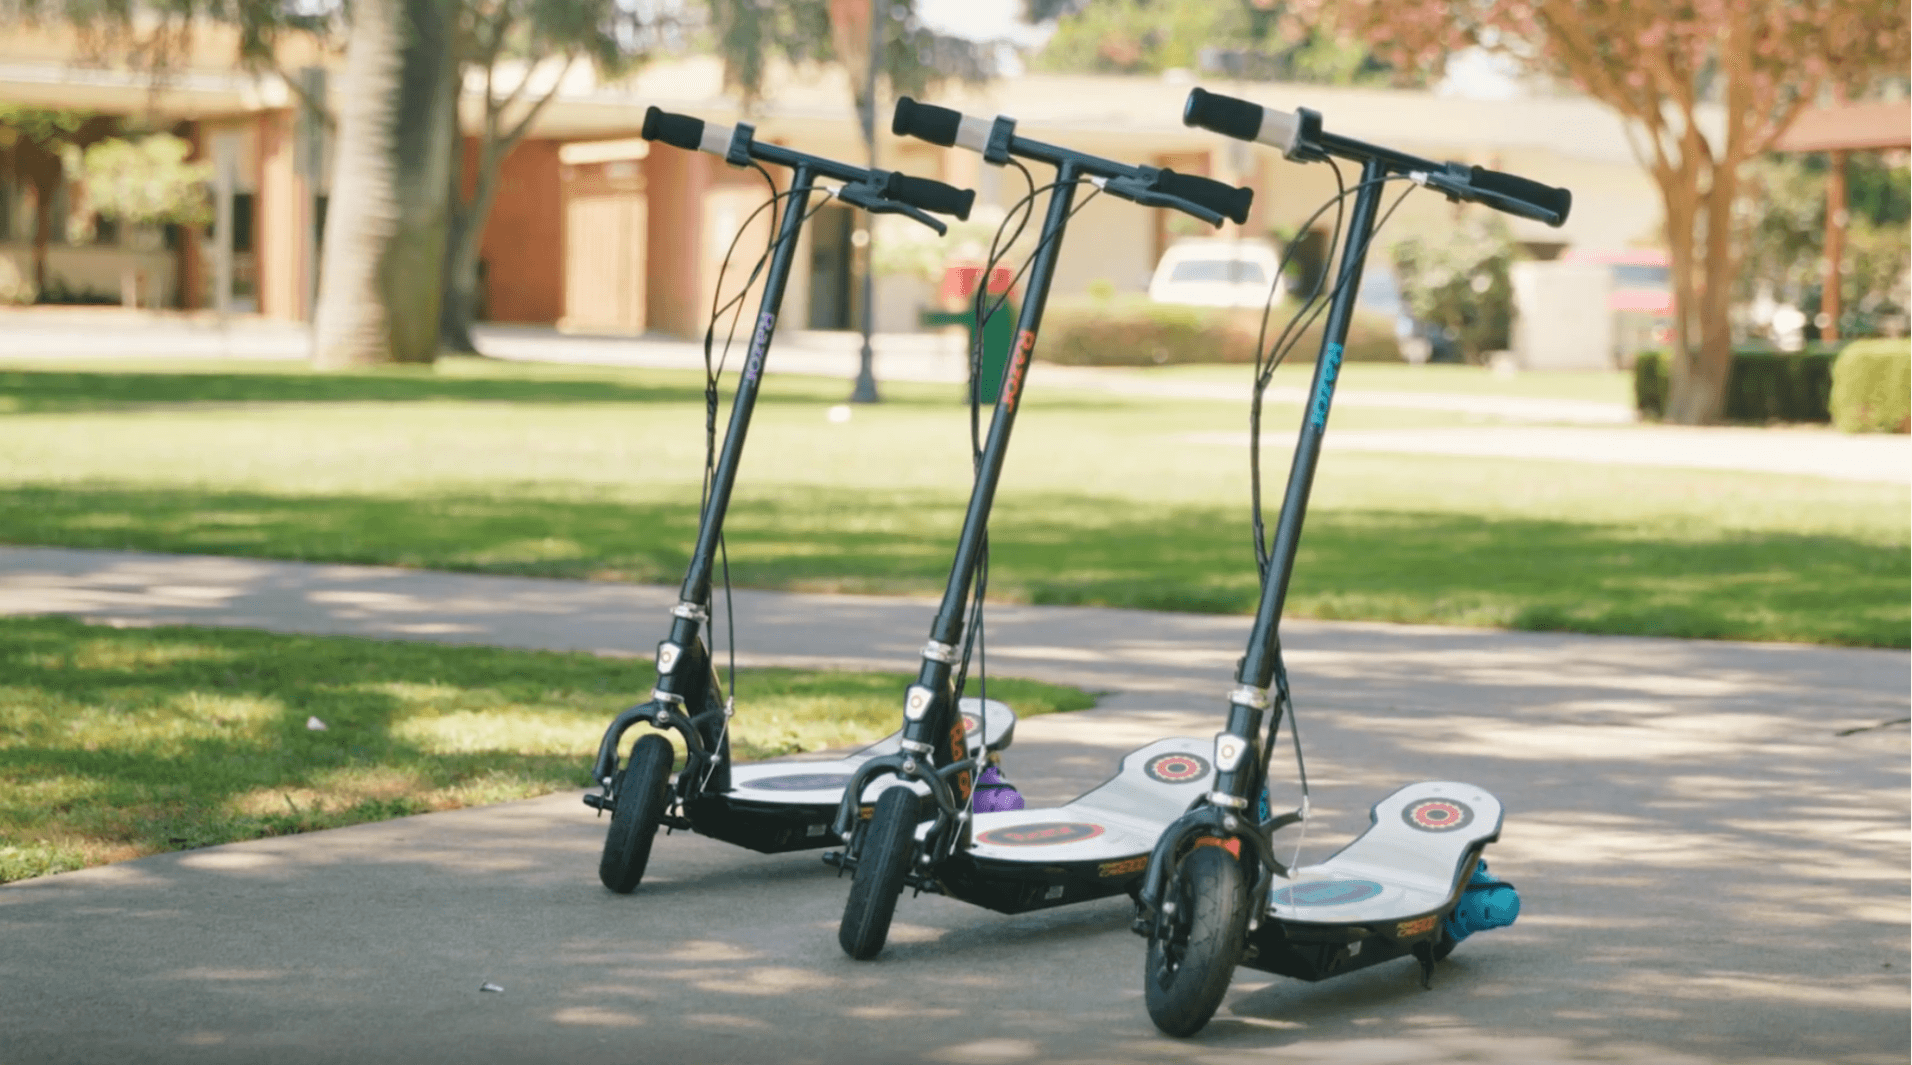 Set of 3 Razor electric scooters resting on stands in blue, orange and pick